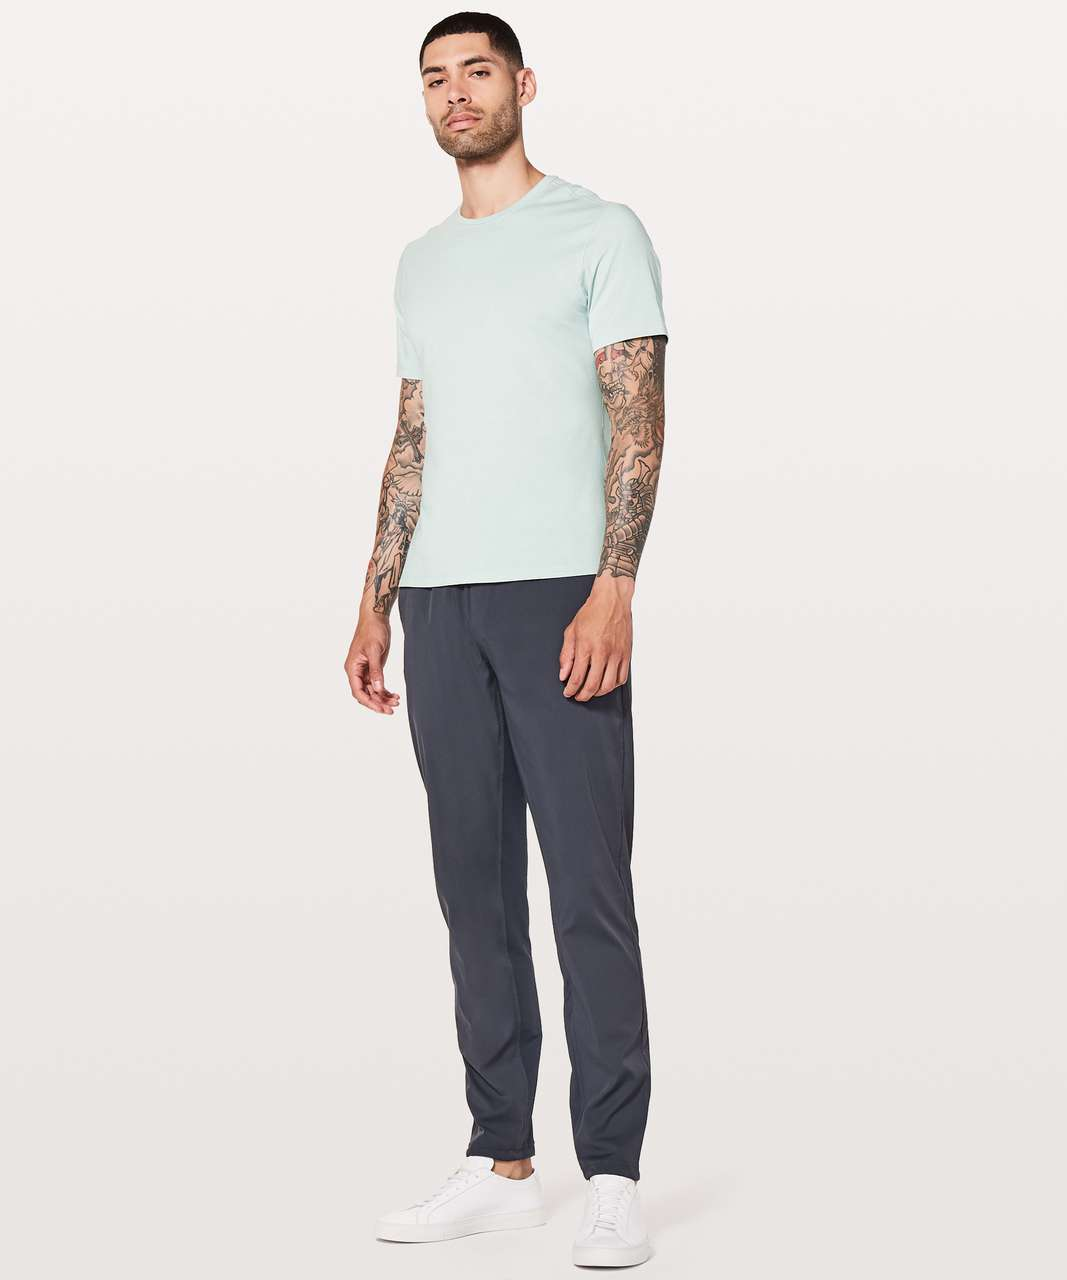 Lululemon 5 Year Basic Tee *Updated Fit - Pelican